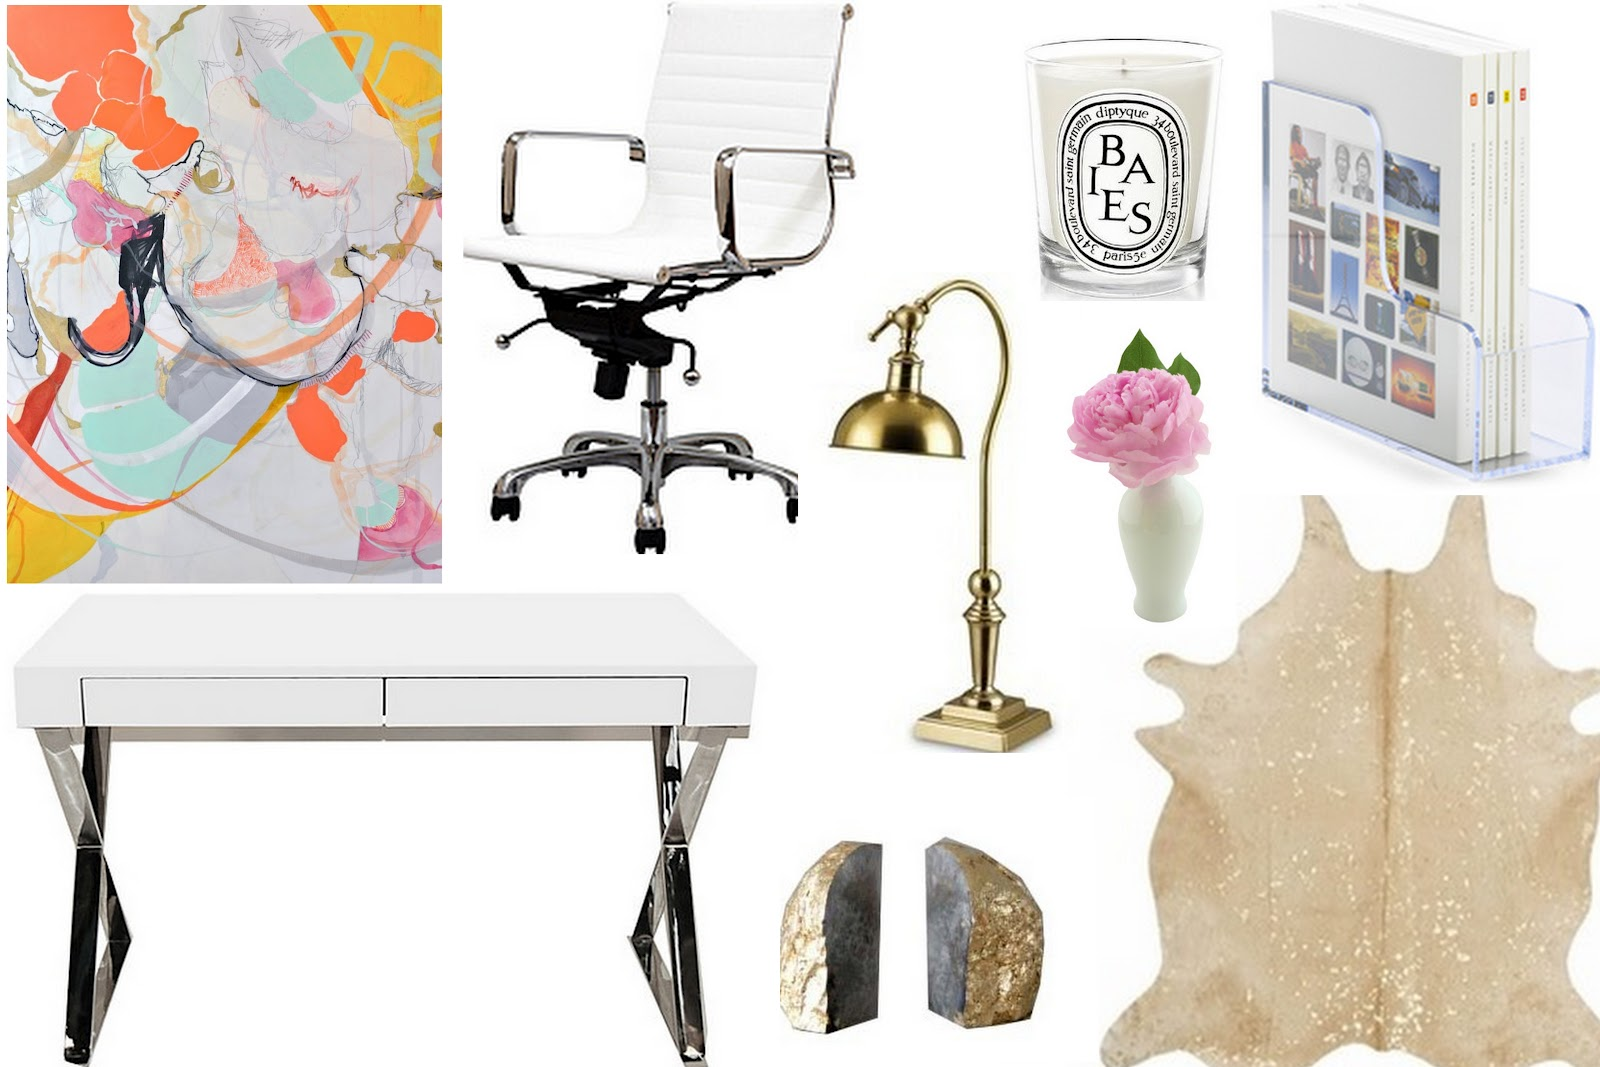 Work Space | Natalie Merrillyn